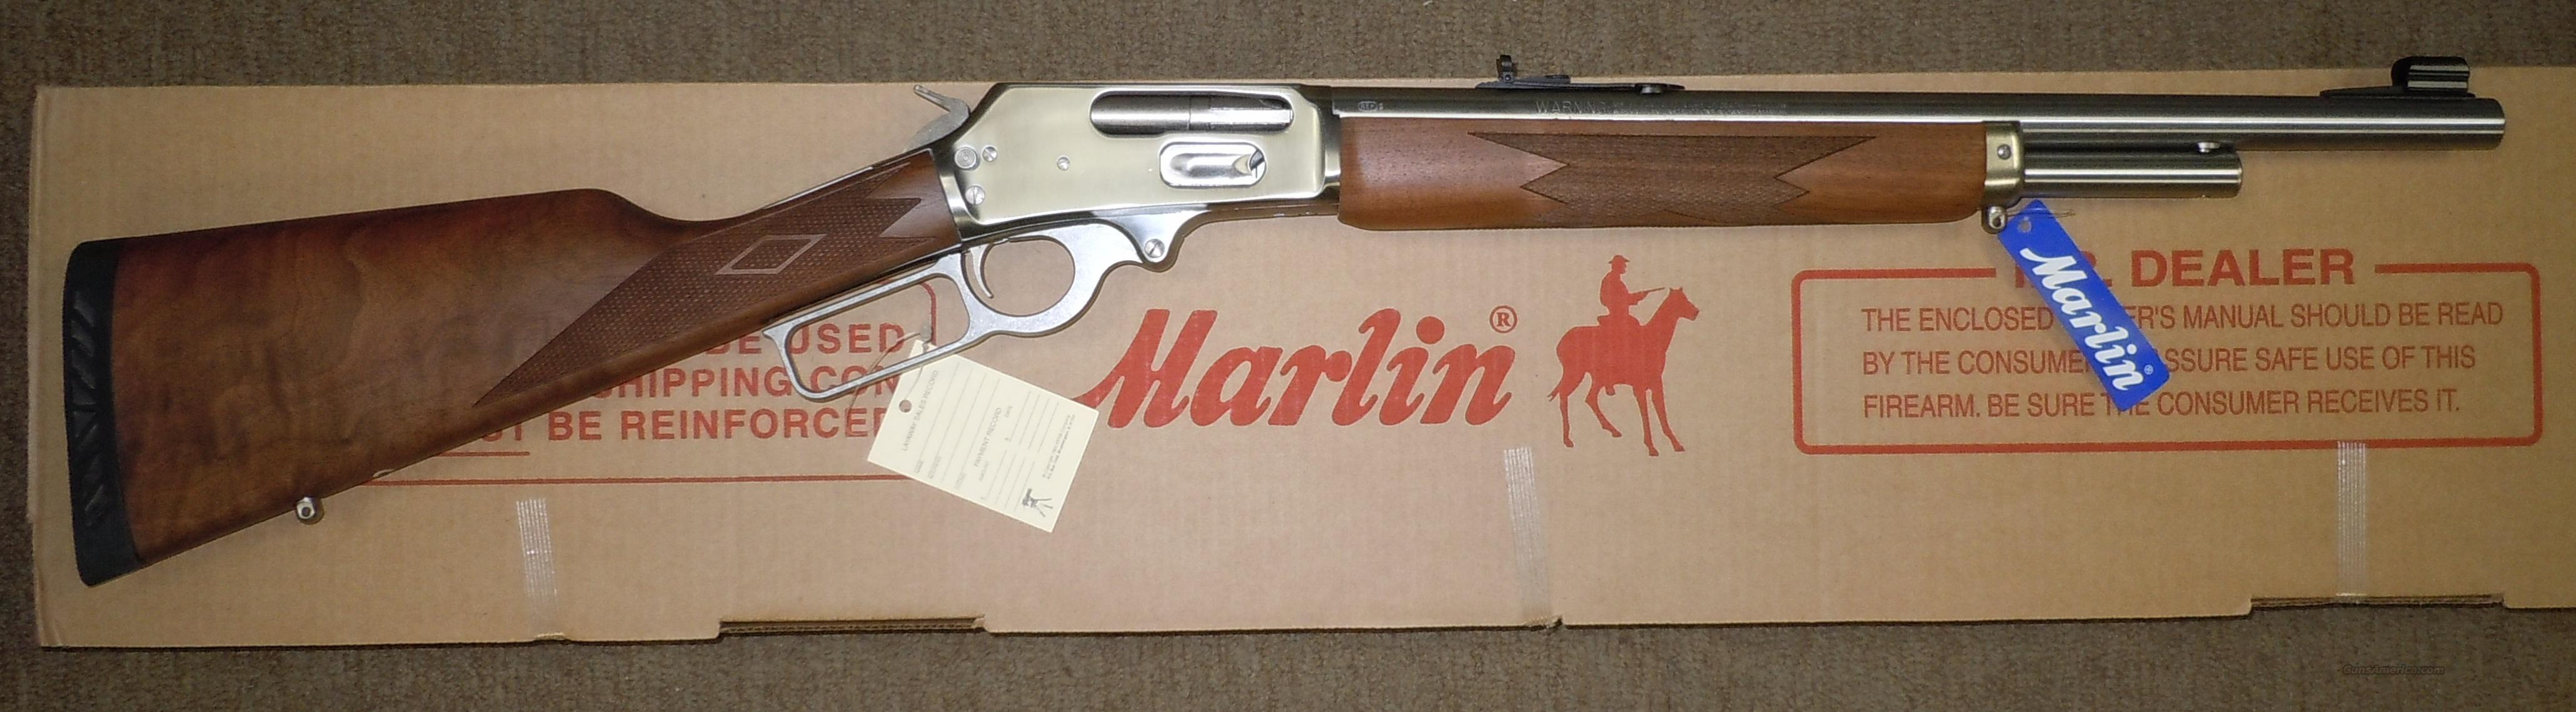 "MARLIN 1895GS 45/70 GOVERNMENT LEVER ACTION RIFLE STAINLESS STEEL, 18-1/2"" BARREL, CHECKERED WOOD STOCK  Guns > Rifles > Marlin Rifles > Modern > Lever Action"